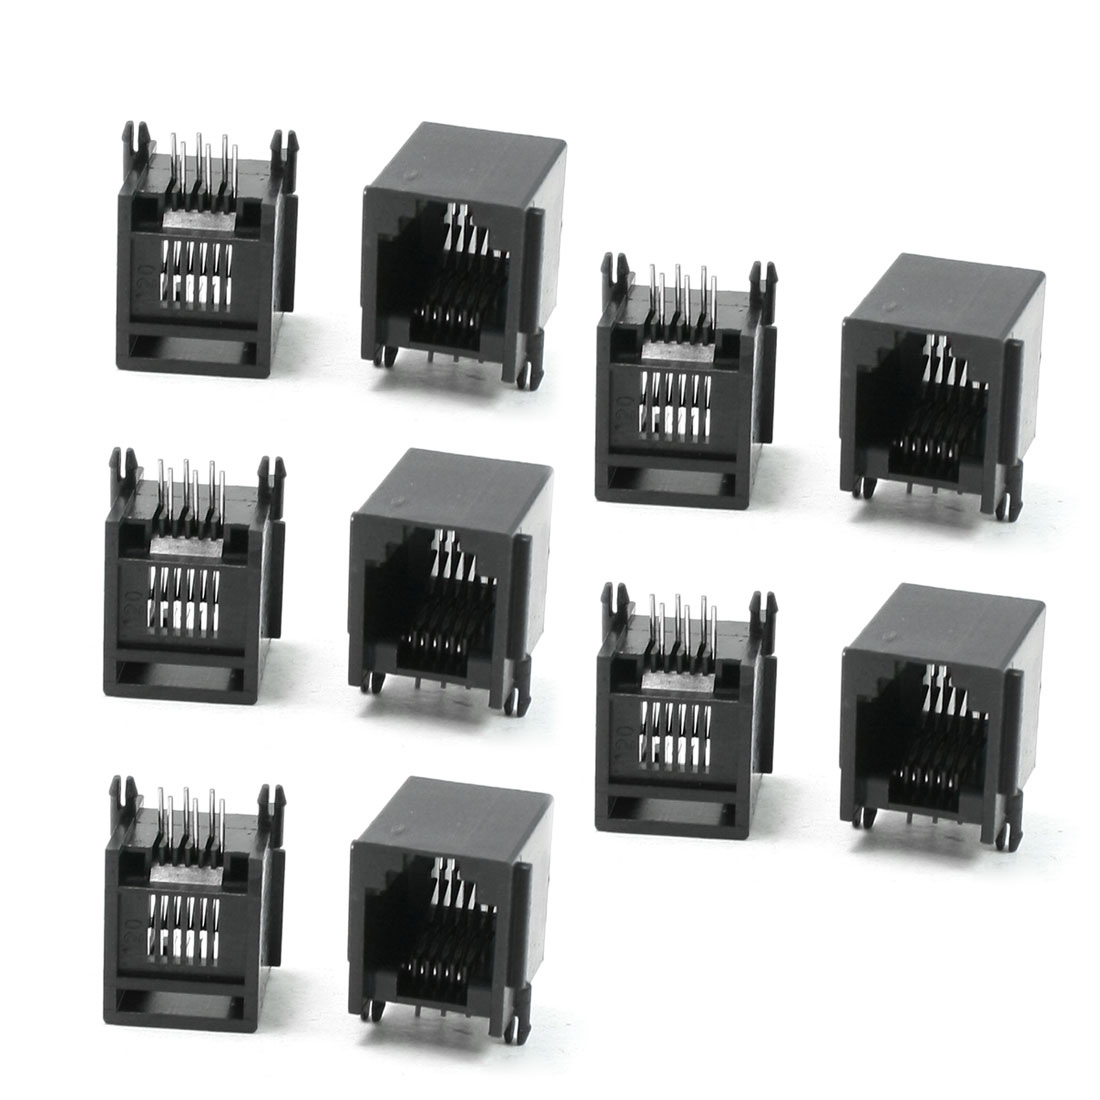 10 Pcs RJ12 6P6C Side Entry Network Jacks Connectors 15 x 12 x 14mm